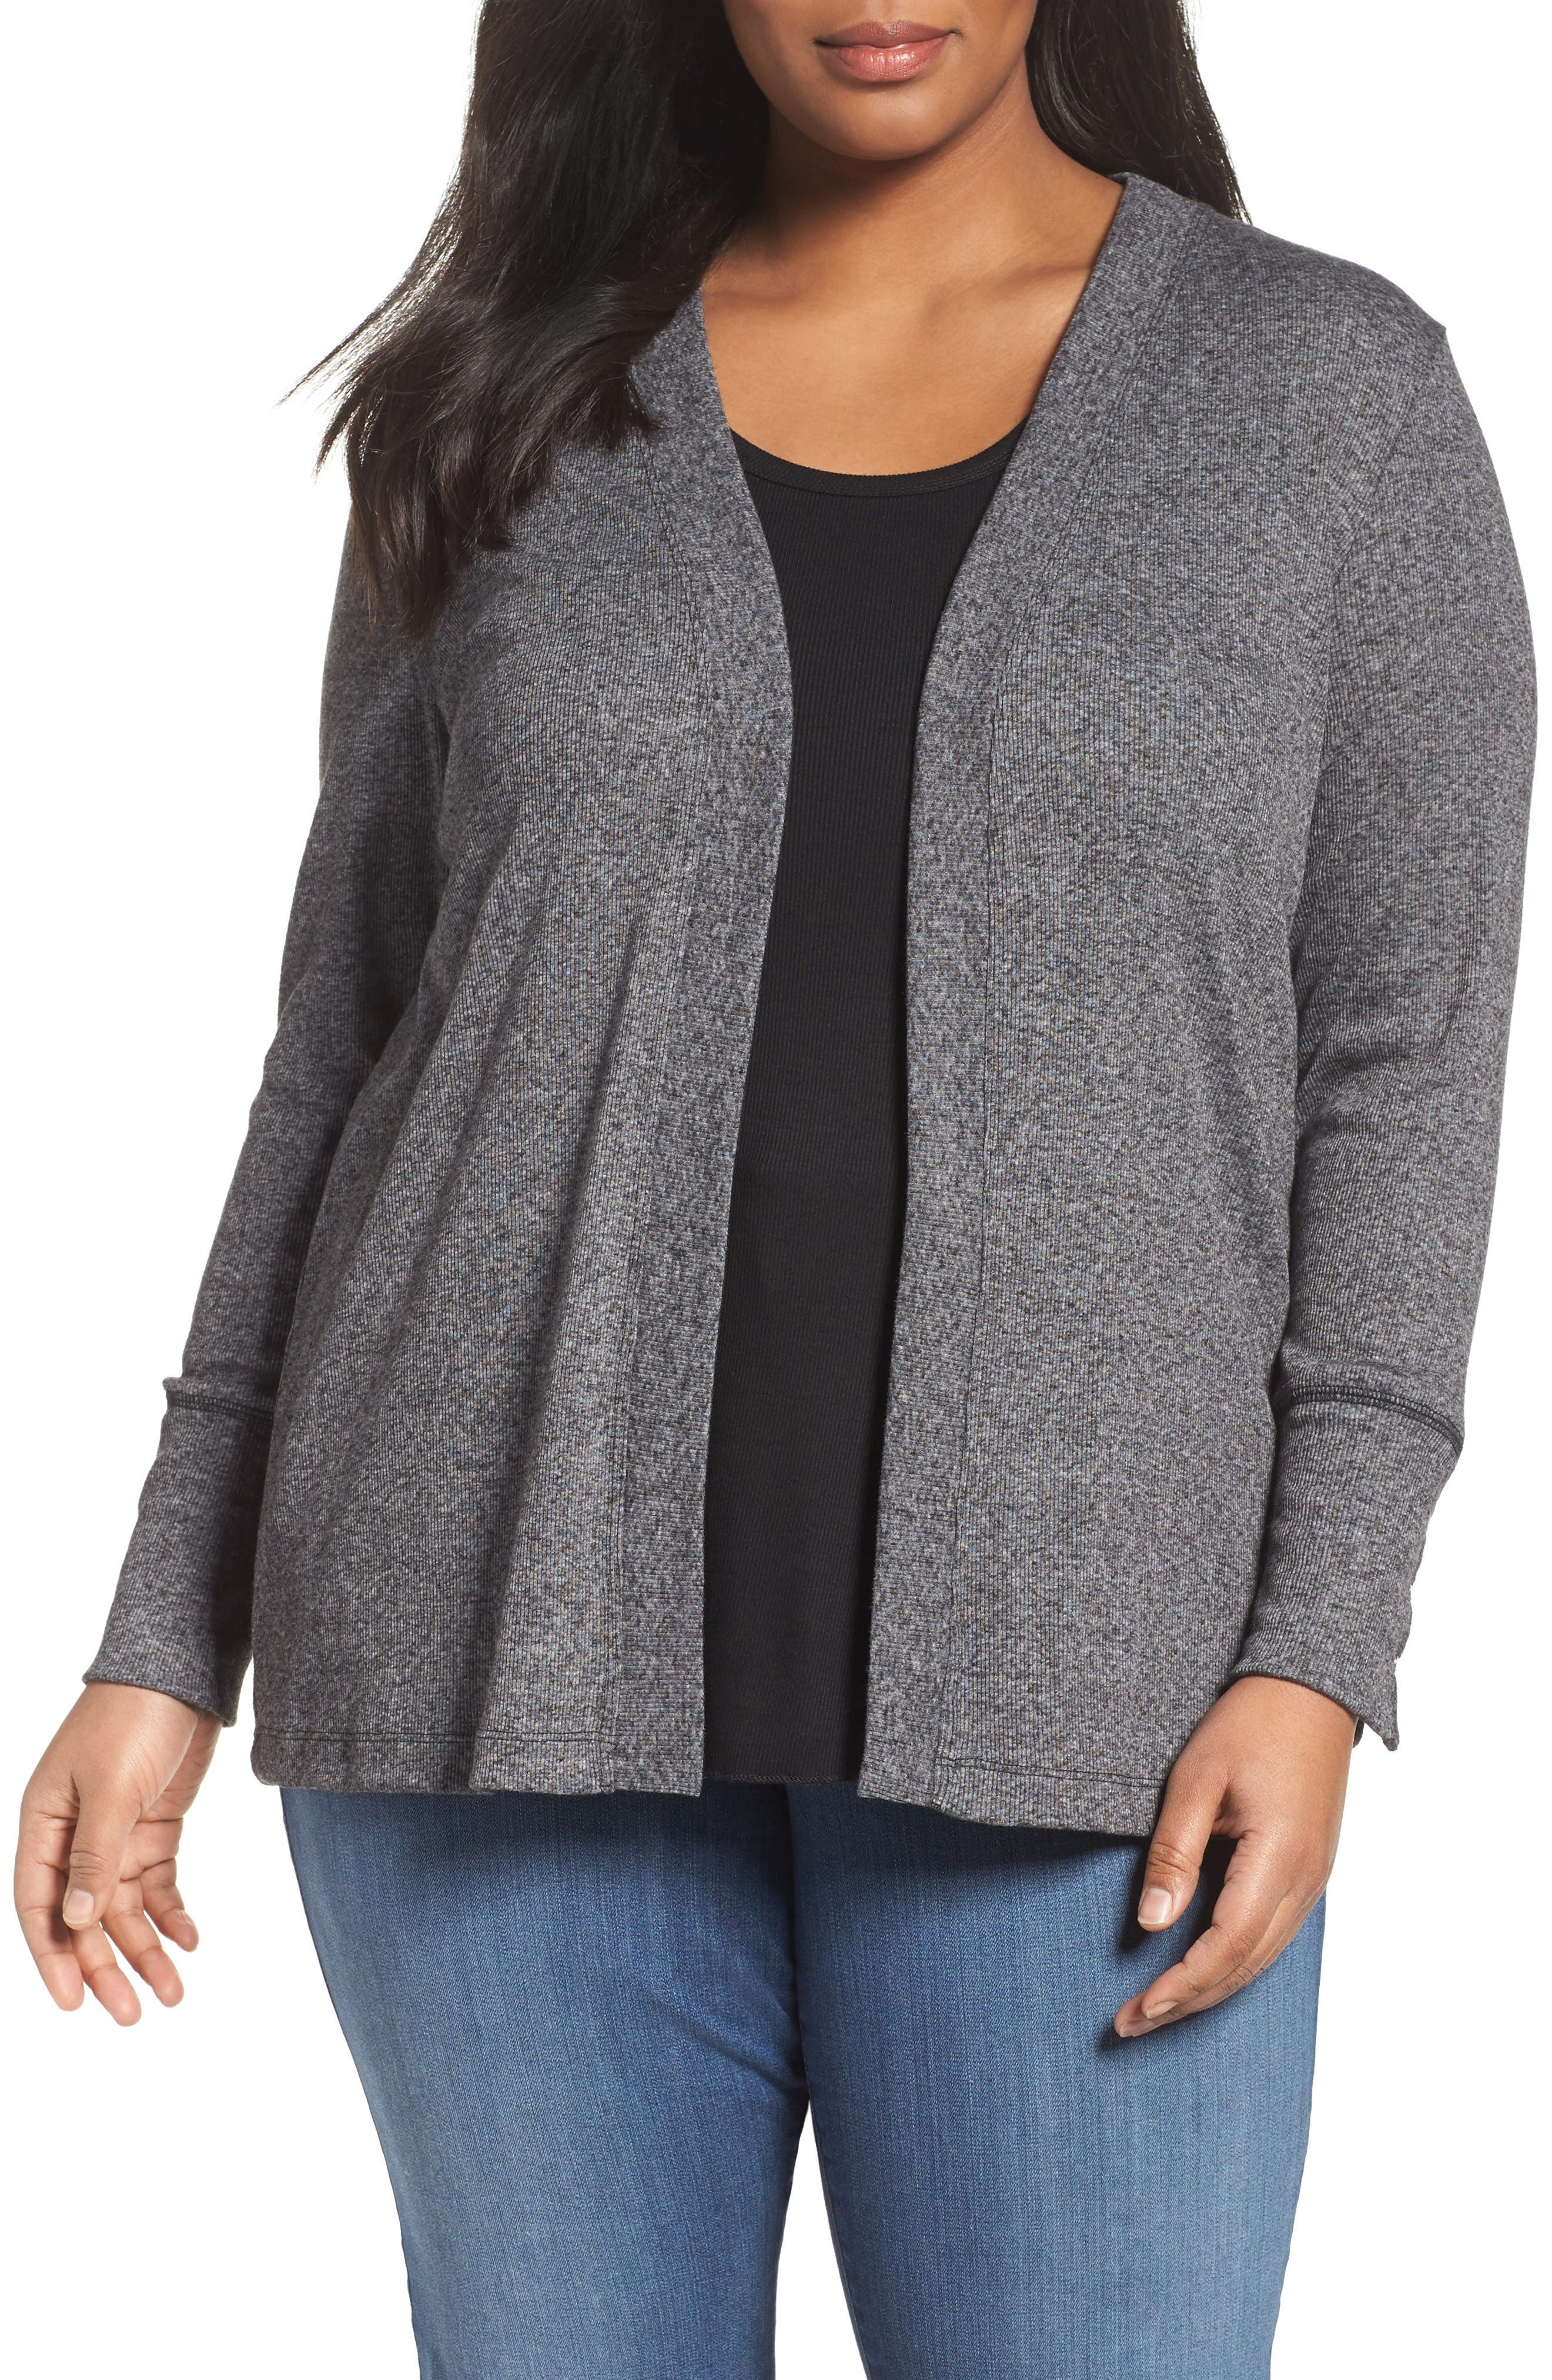 Main Image - MICHAEL Michael Kors Marled Open Cardigan (Plus Size)